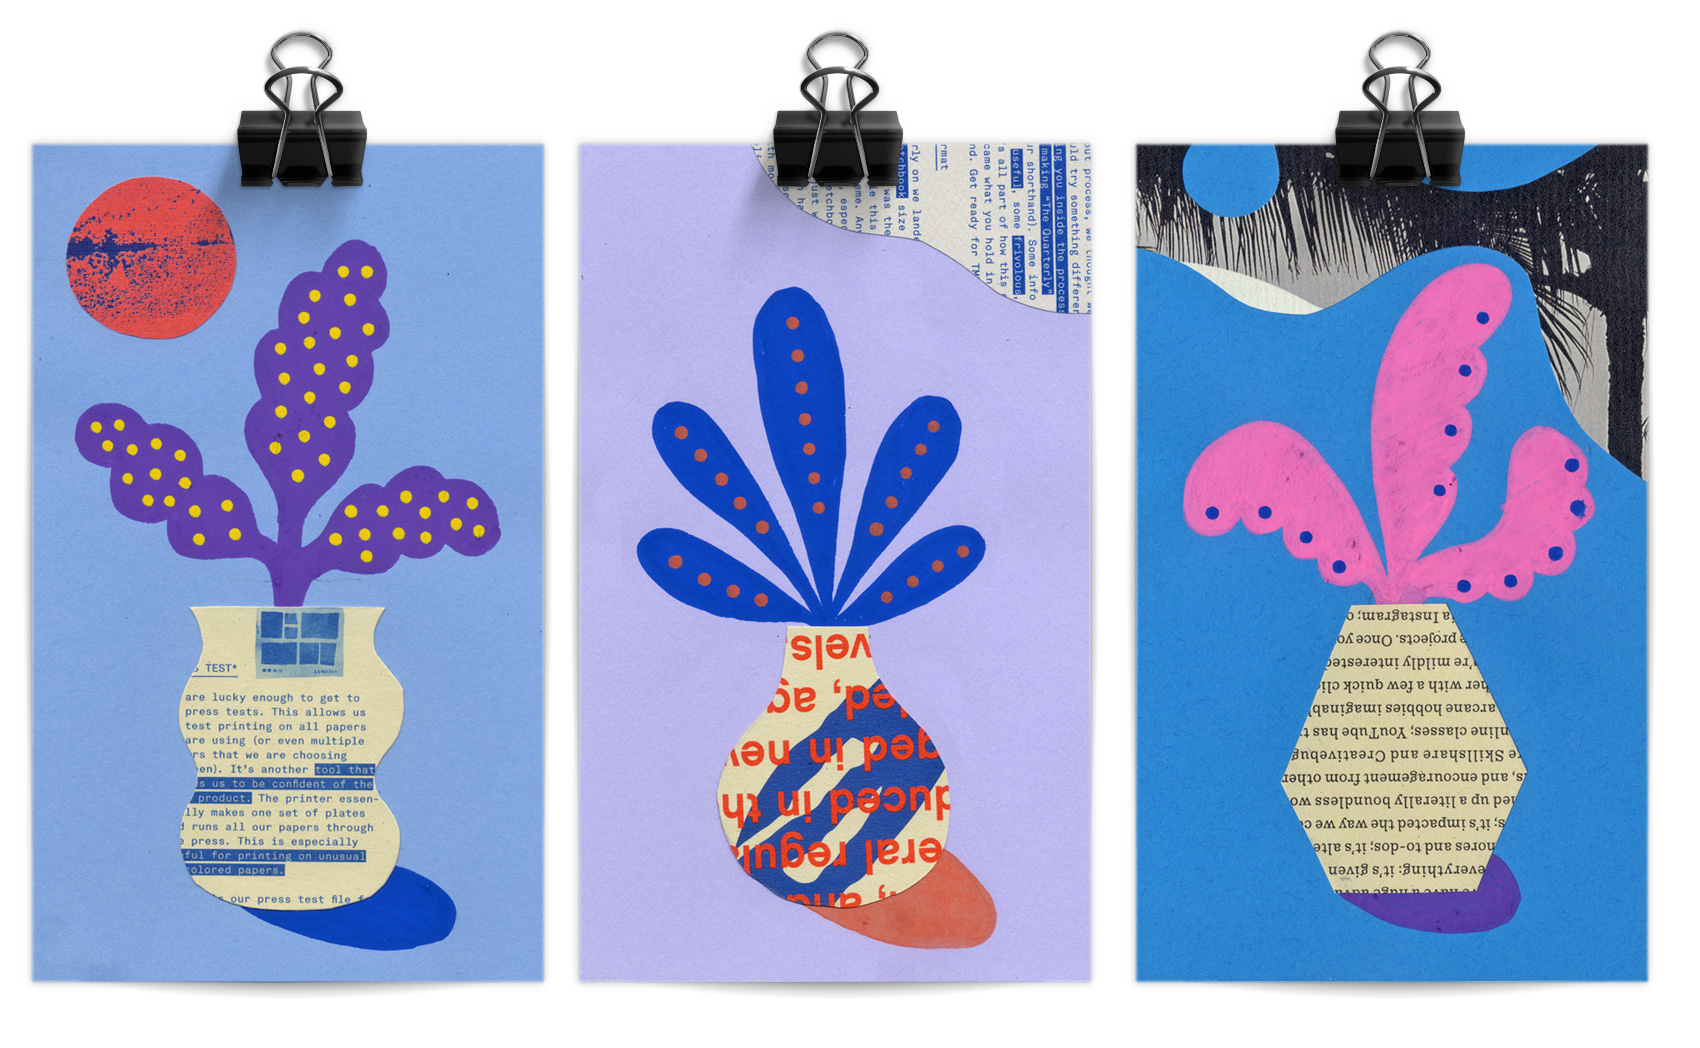 Posca marker artwork of three plants in vases, using markers and collage paper from the Mohawk Maker's Quarterly.